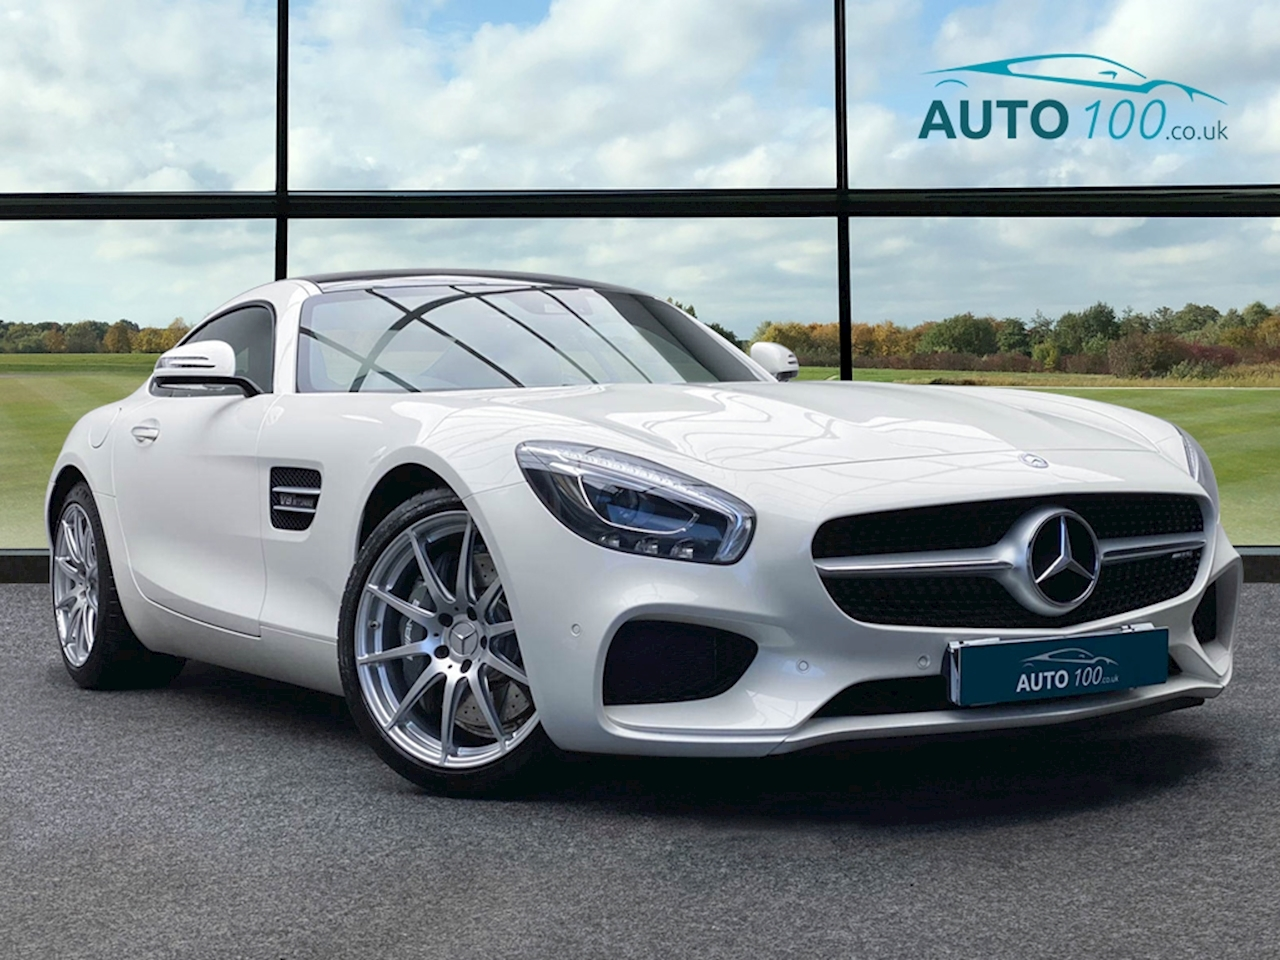 Mercedes-Benz 4.0 V8 BiTurbo Coupe 2dr Petrol SpdS DCT (s/s) (462 ps)